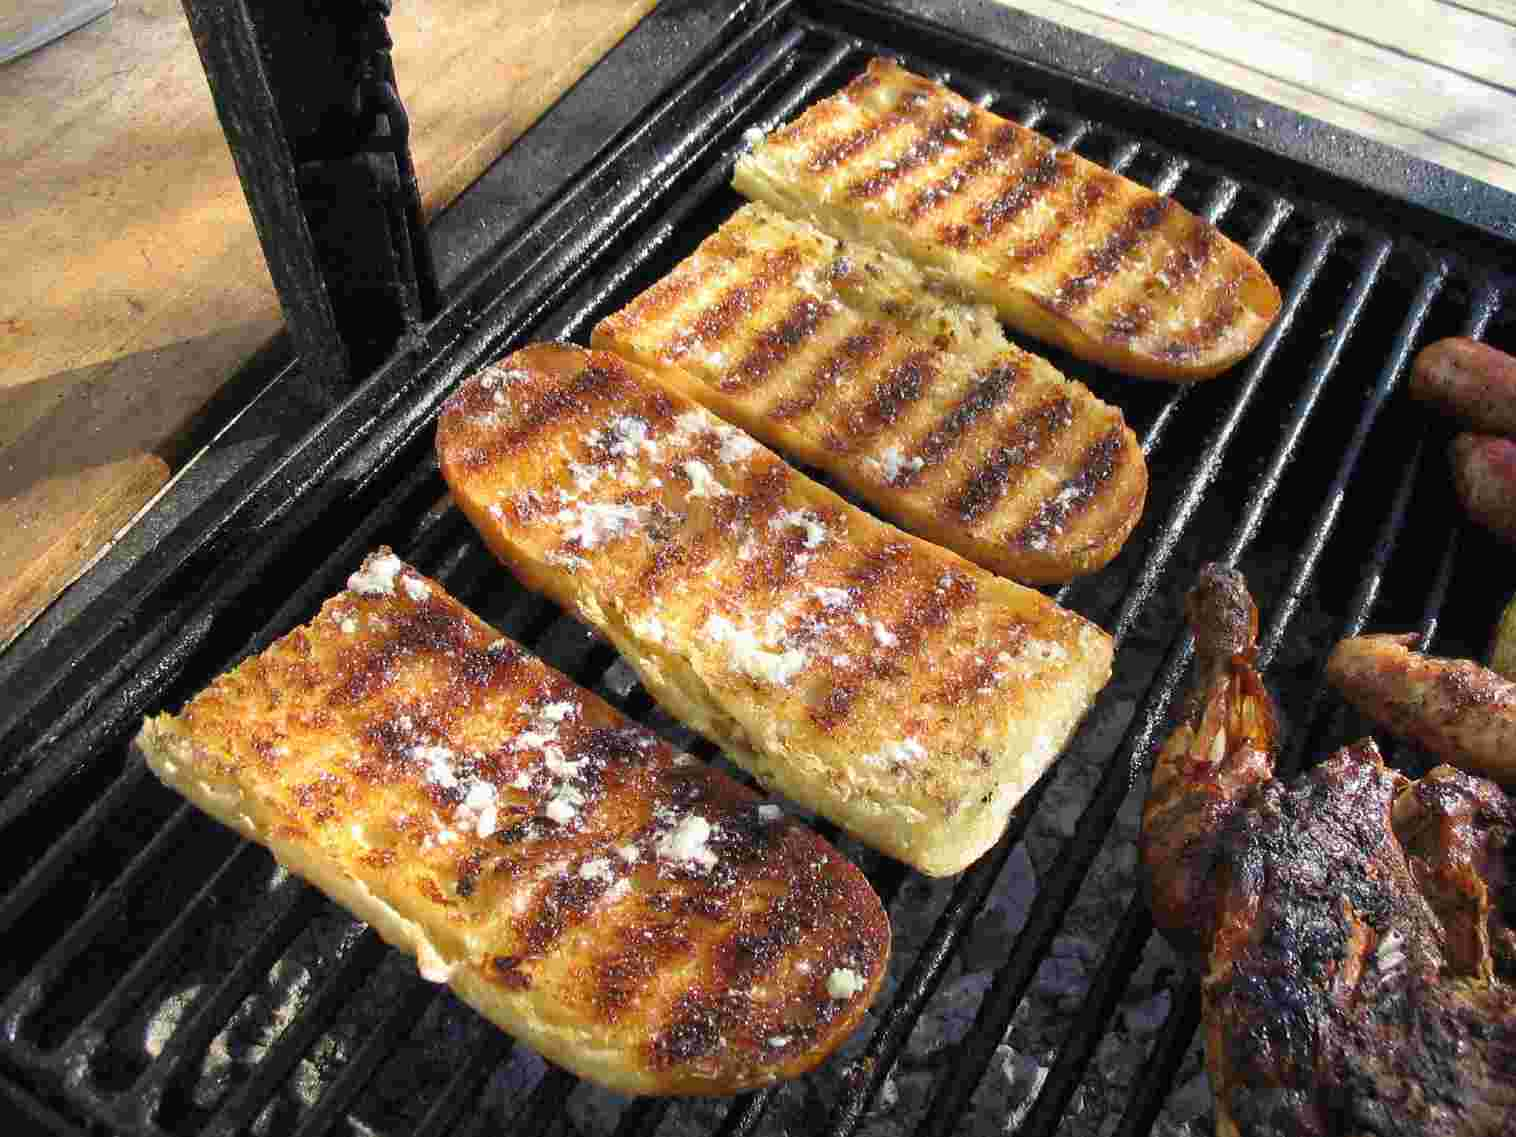 ... on the inside, crispy on the outside. Outstanding BBQ Garlic Bread